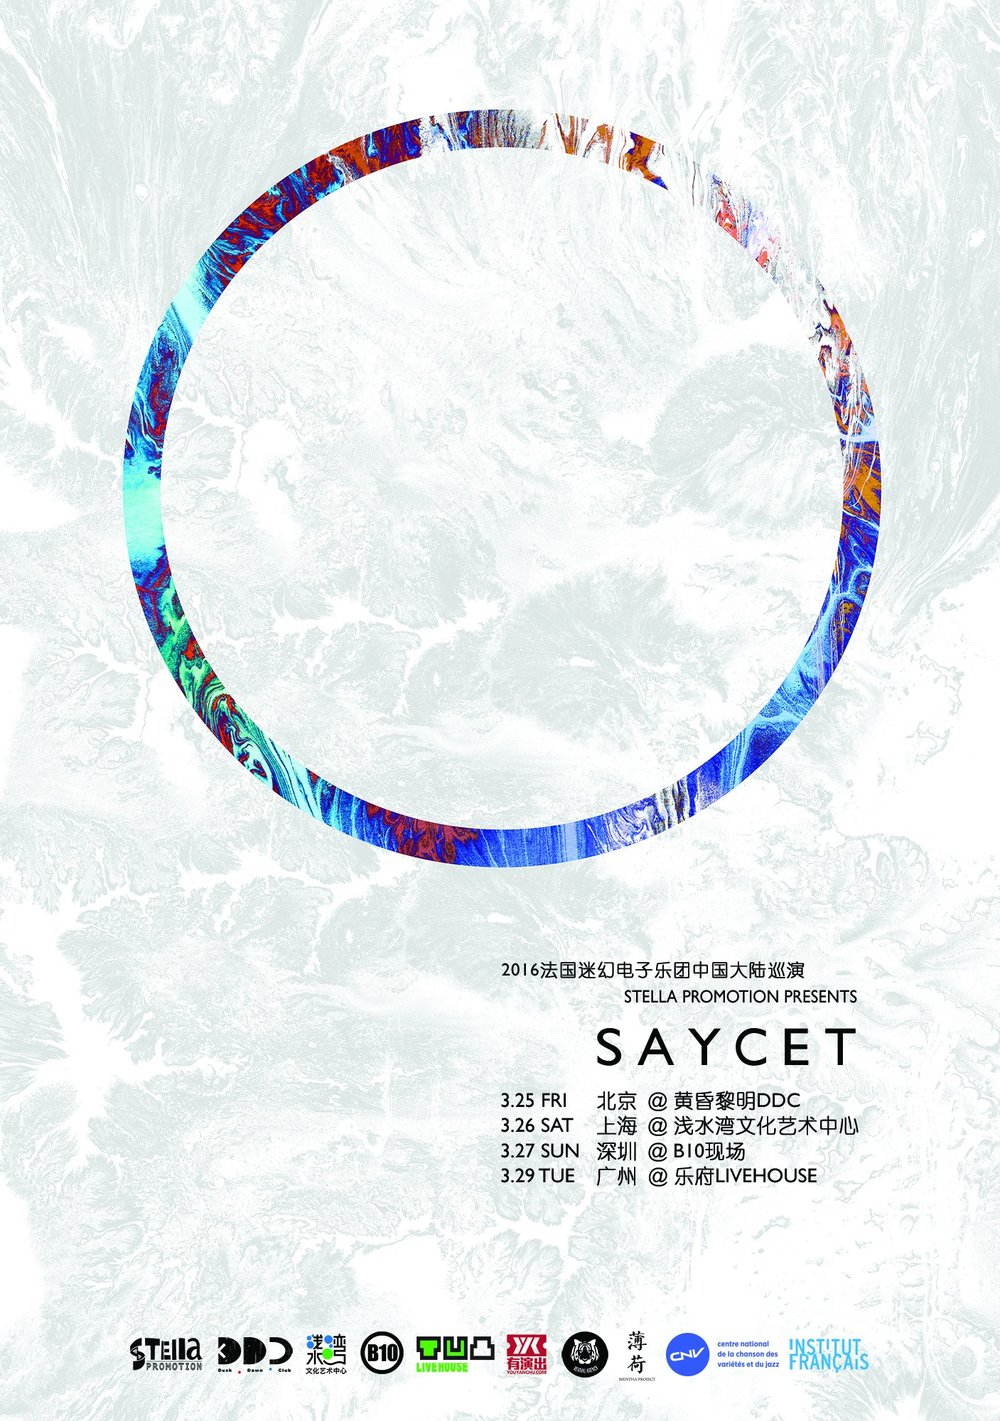 Saycet 2016 China Tour